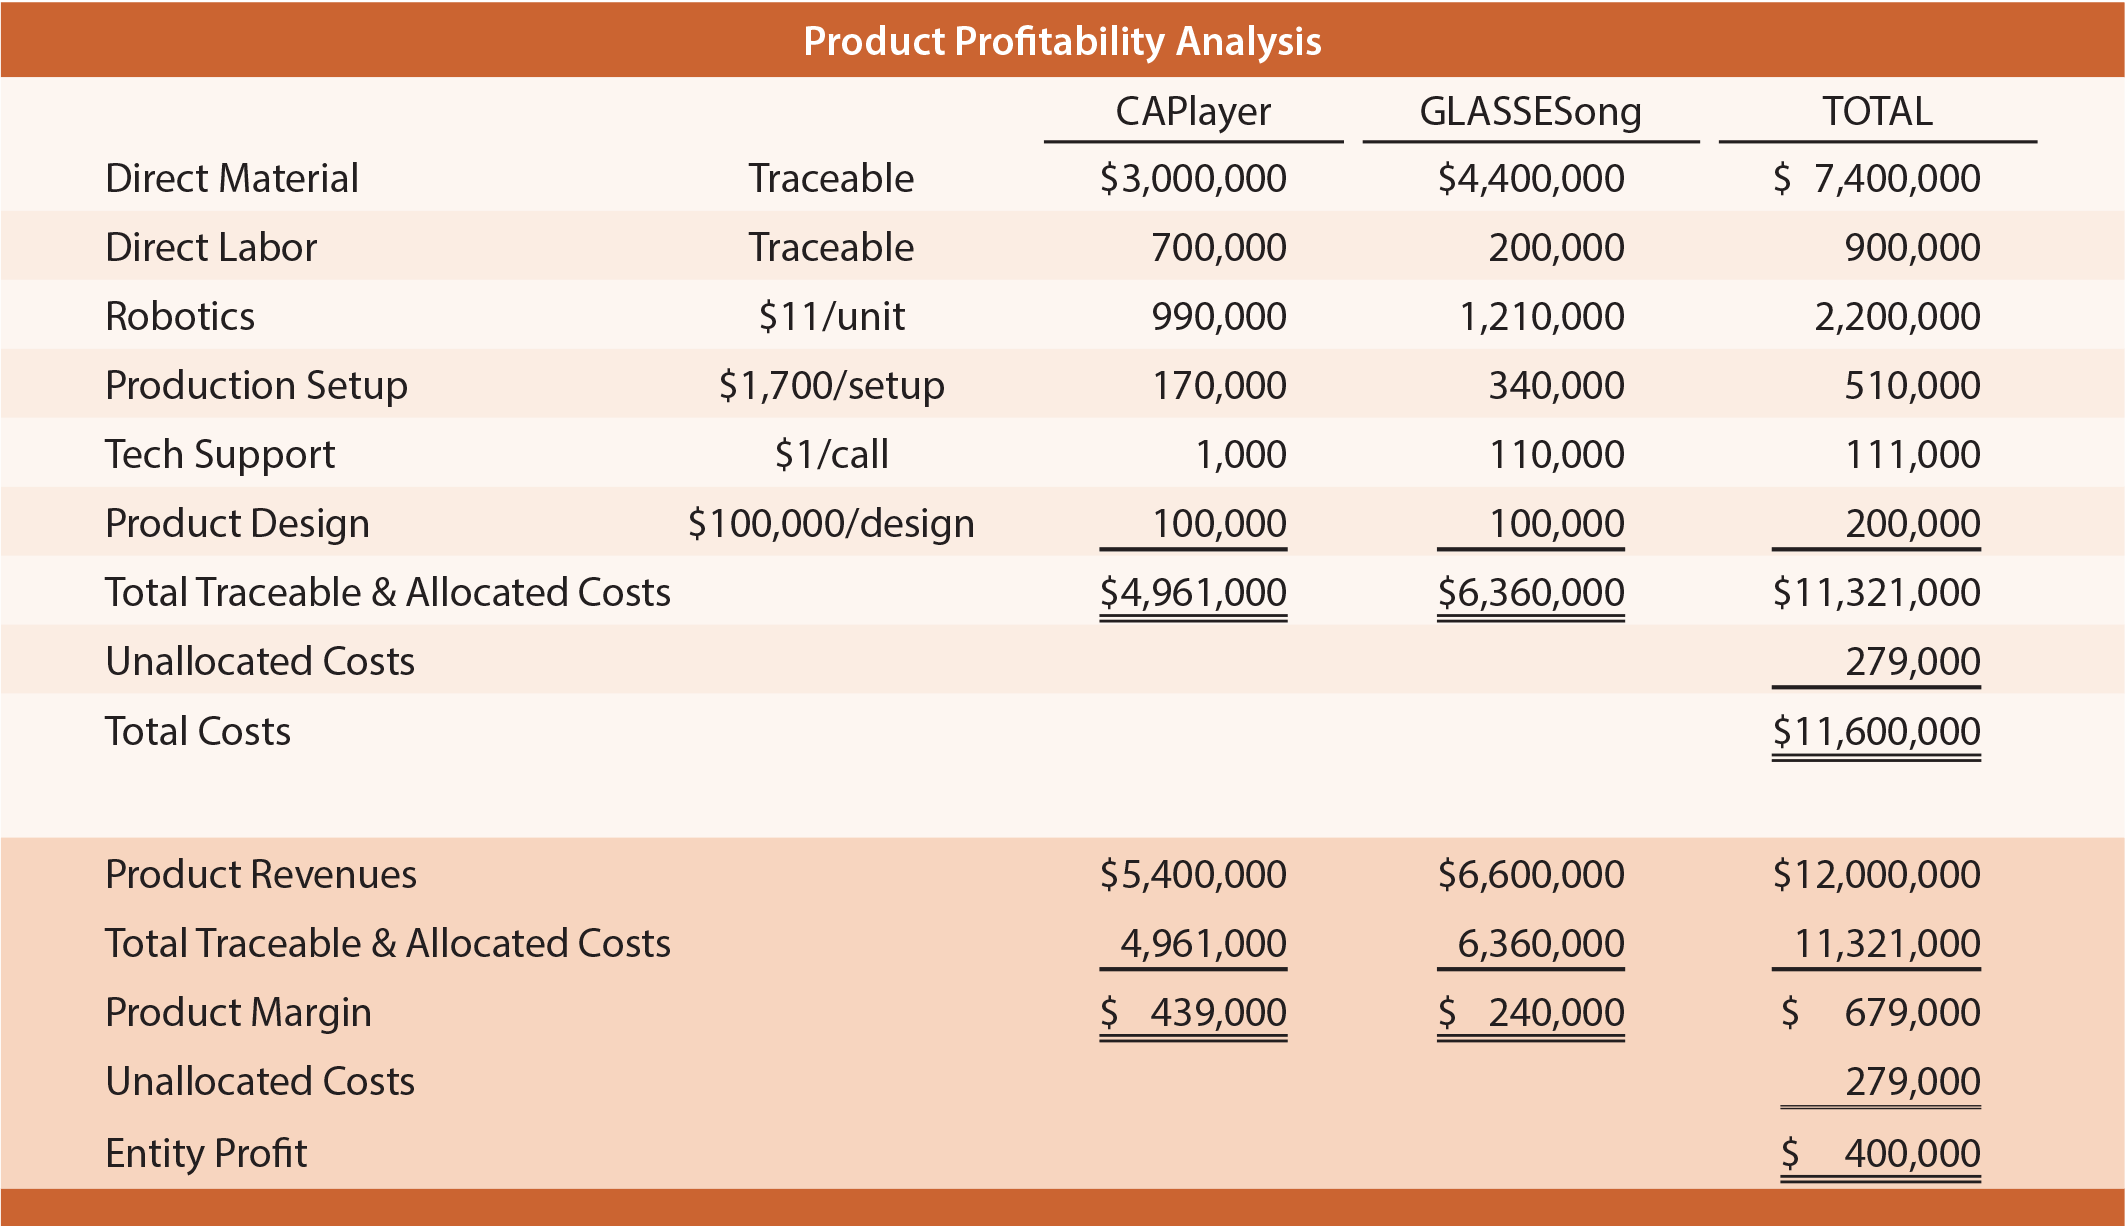 Product Profitability Analysis